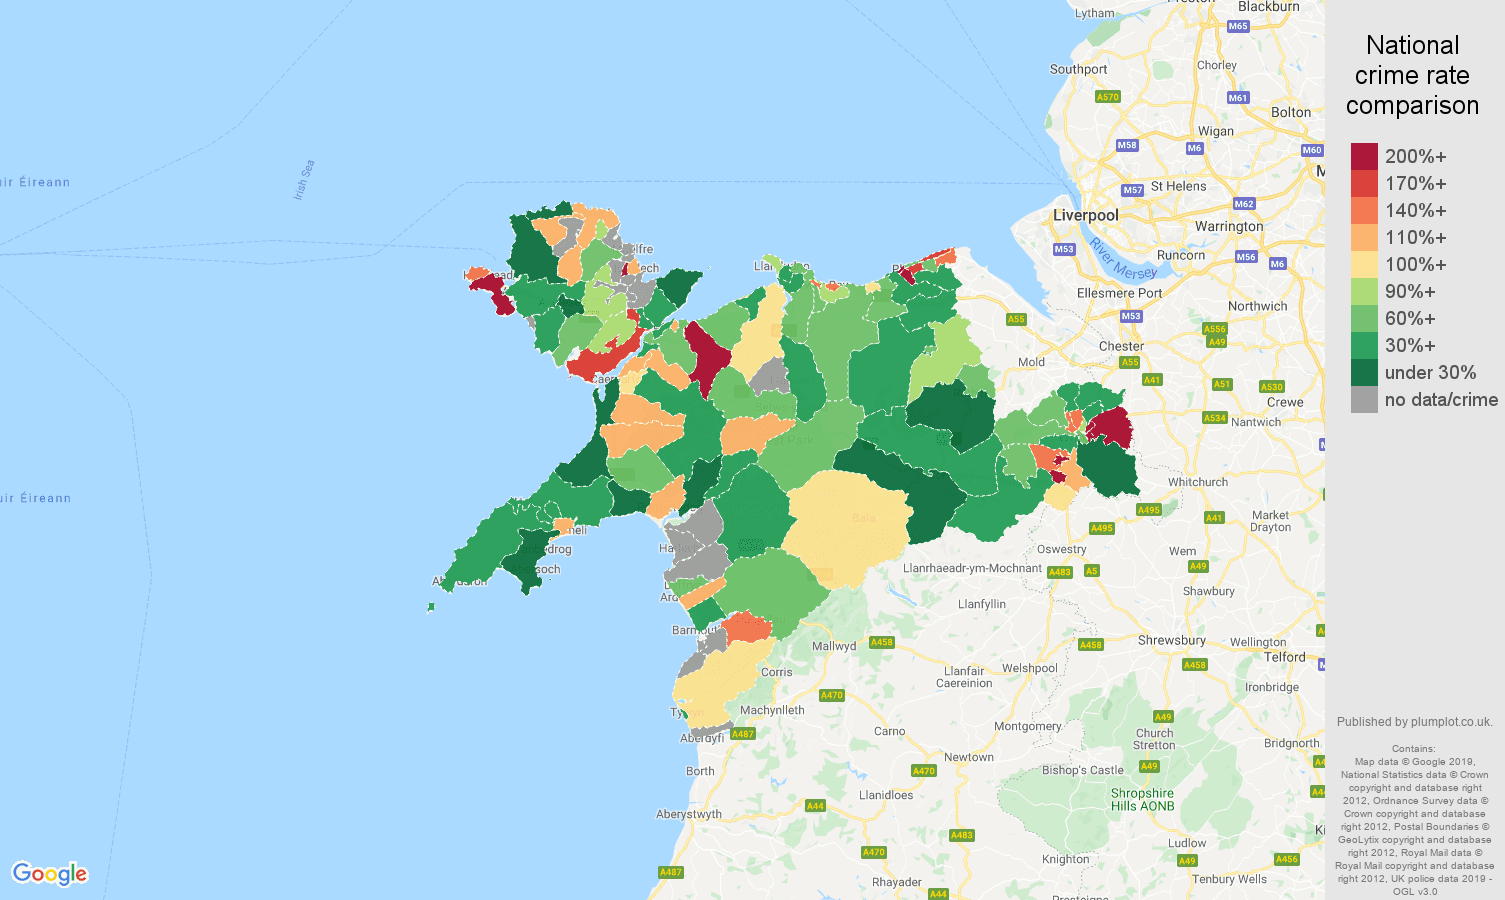 Llandudno other crime rate comparison map